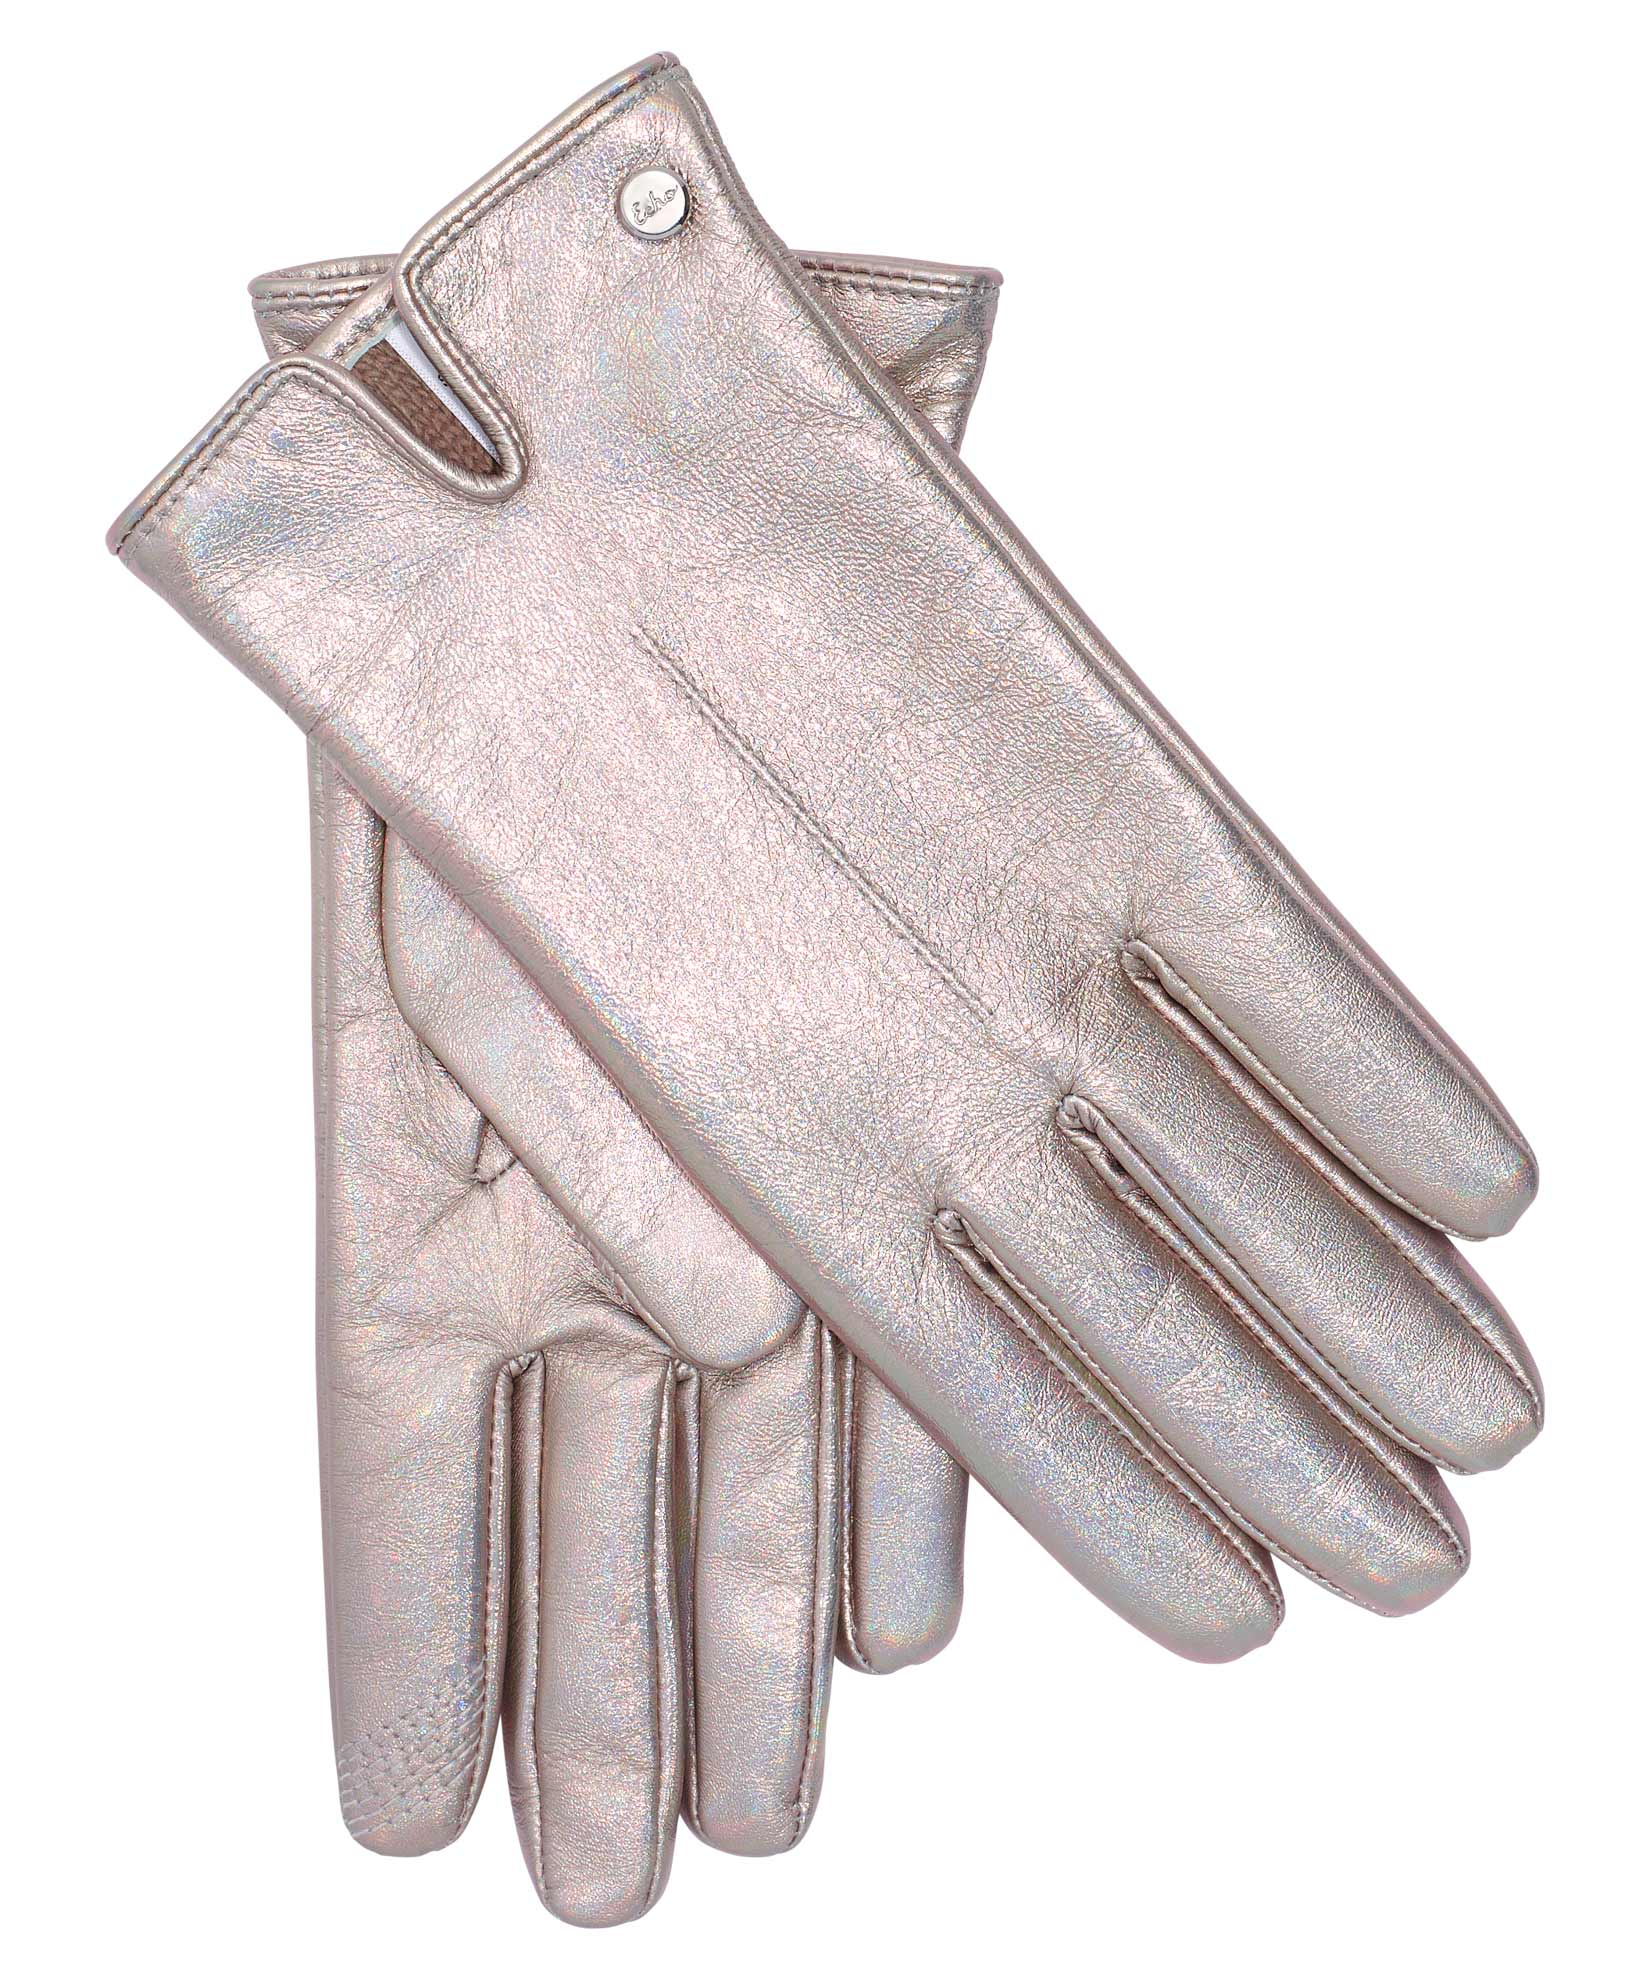 Silver/Multi - Iridescent Leather Touch Glove